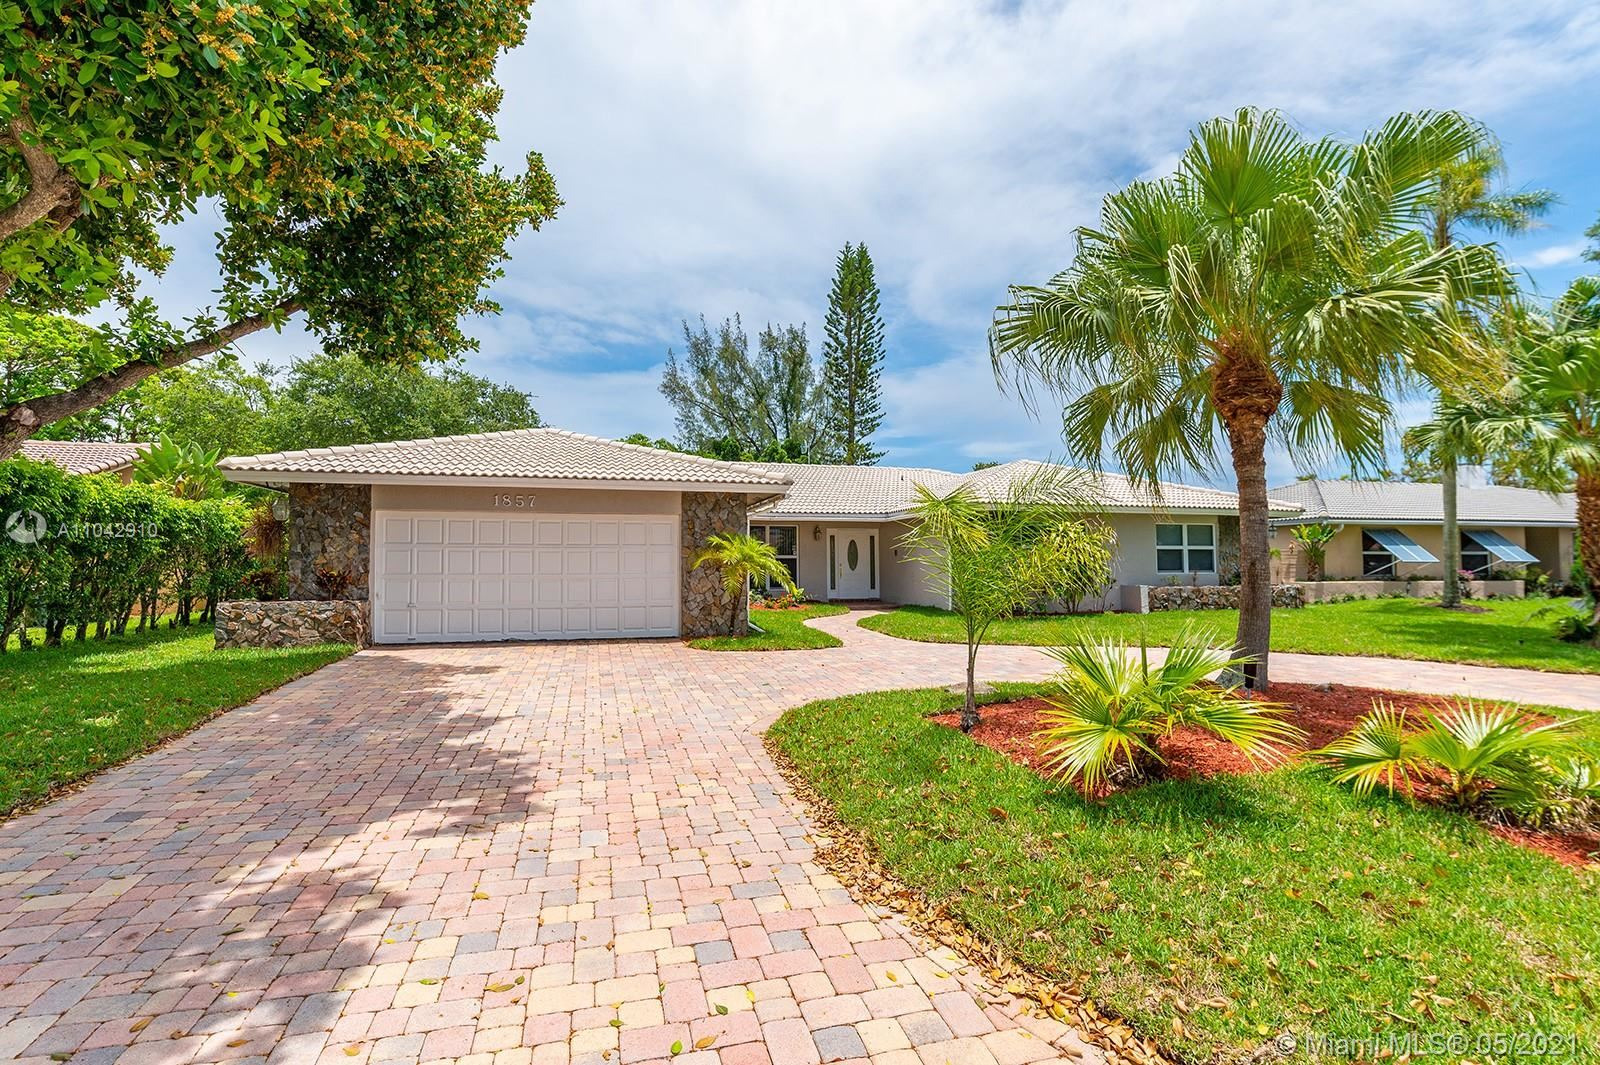 1857 NW 104, Coral Springs, FL 33071 - #: A11042910